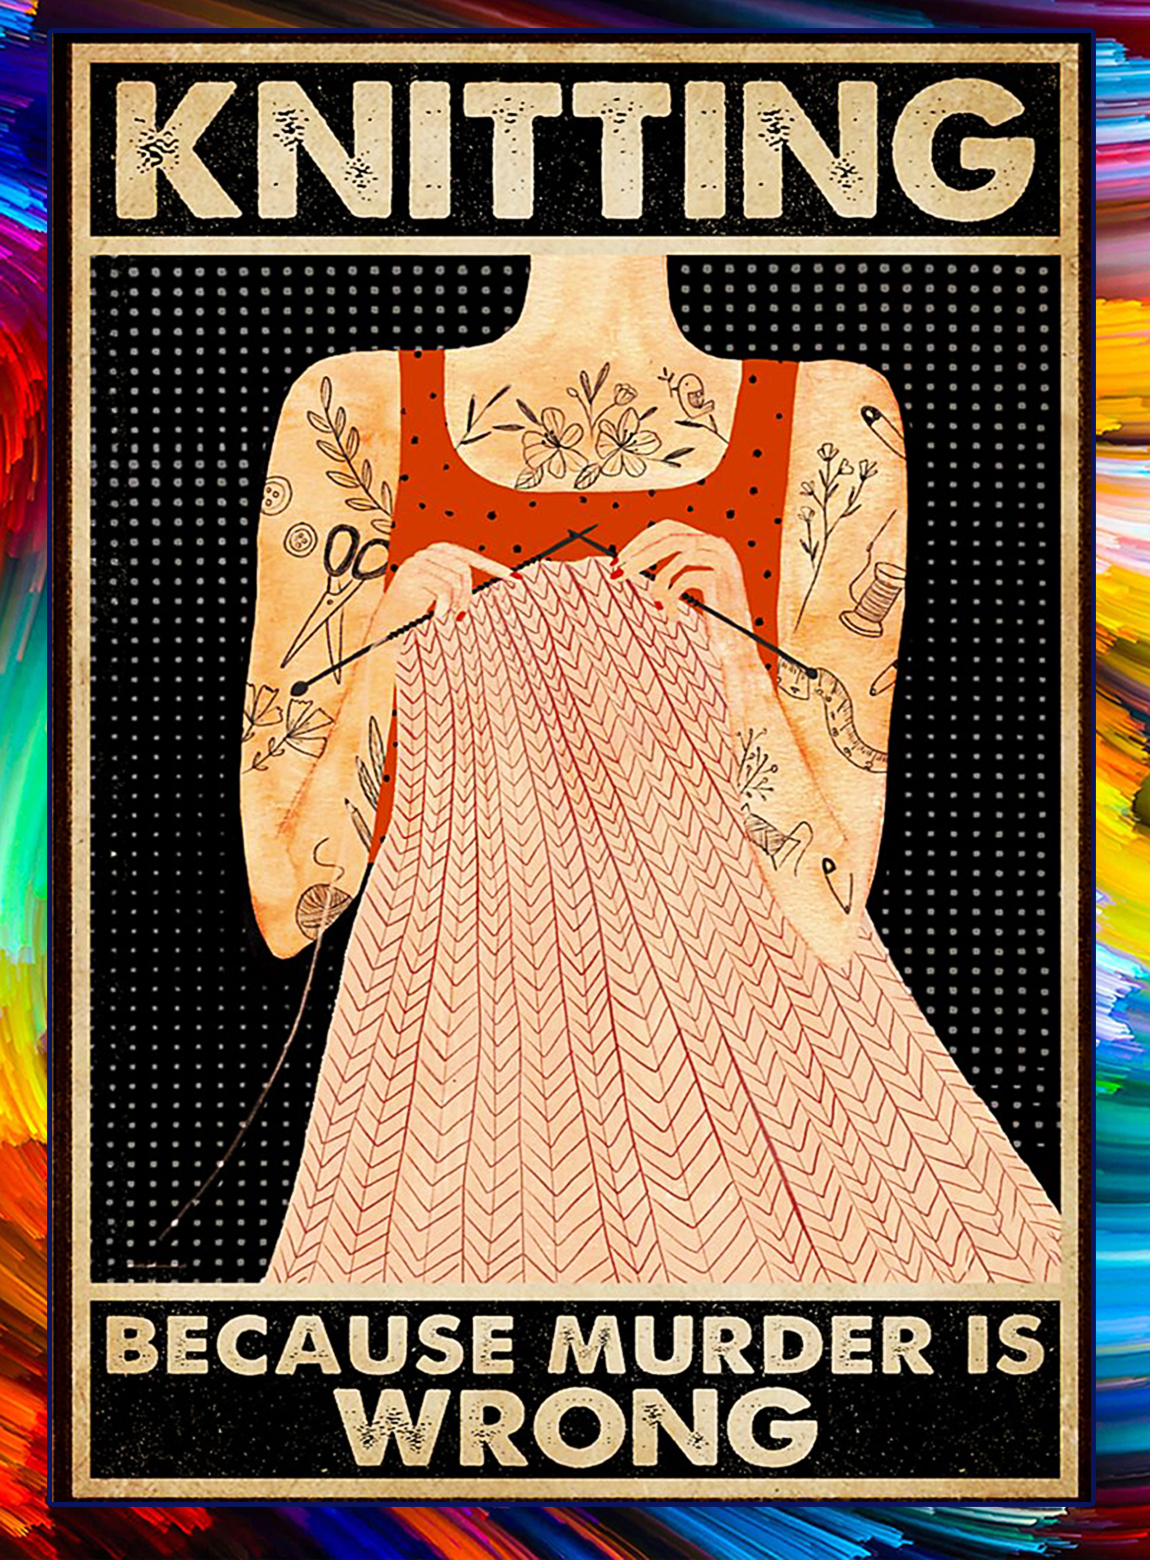 Tattoo girl knitting because murder is wrong poster - A2